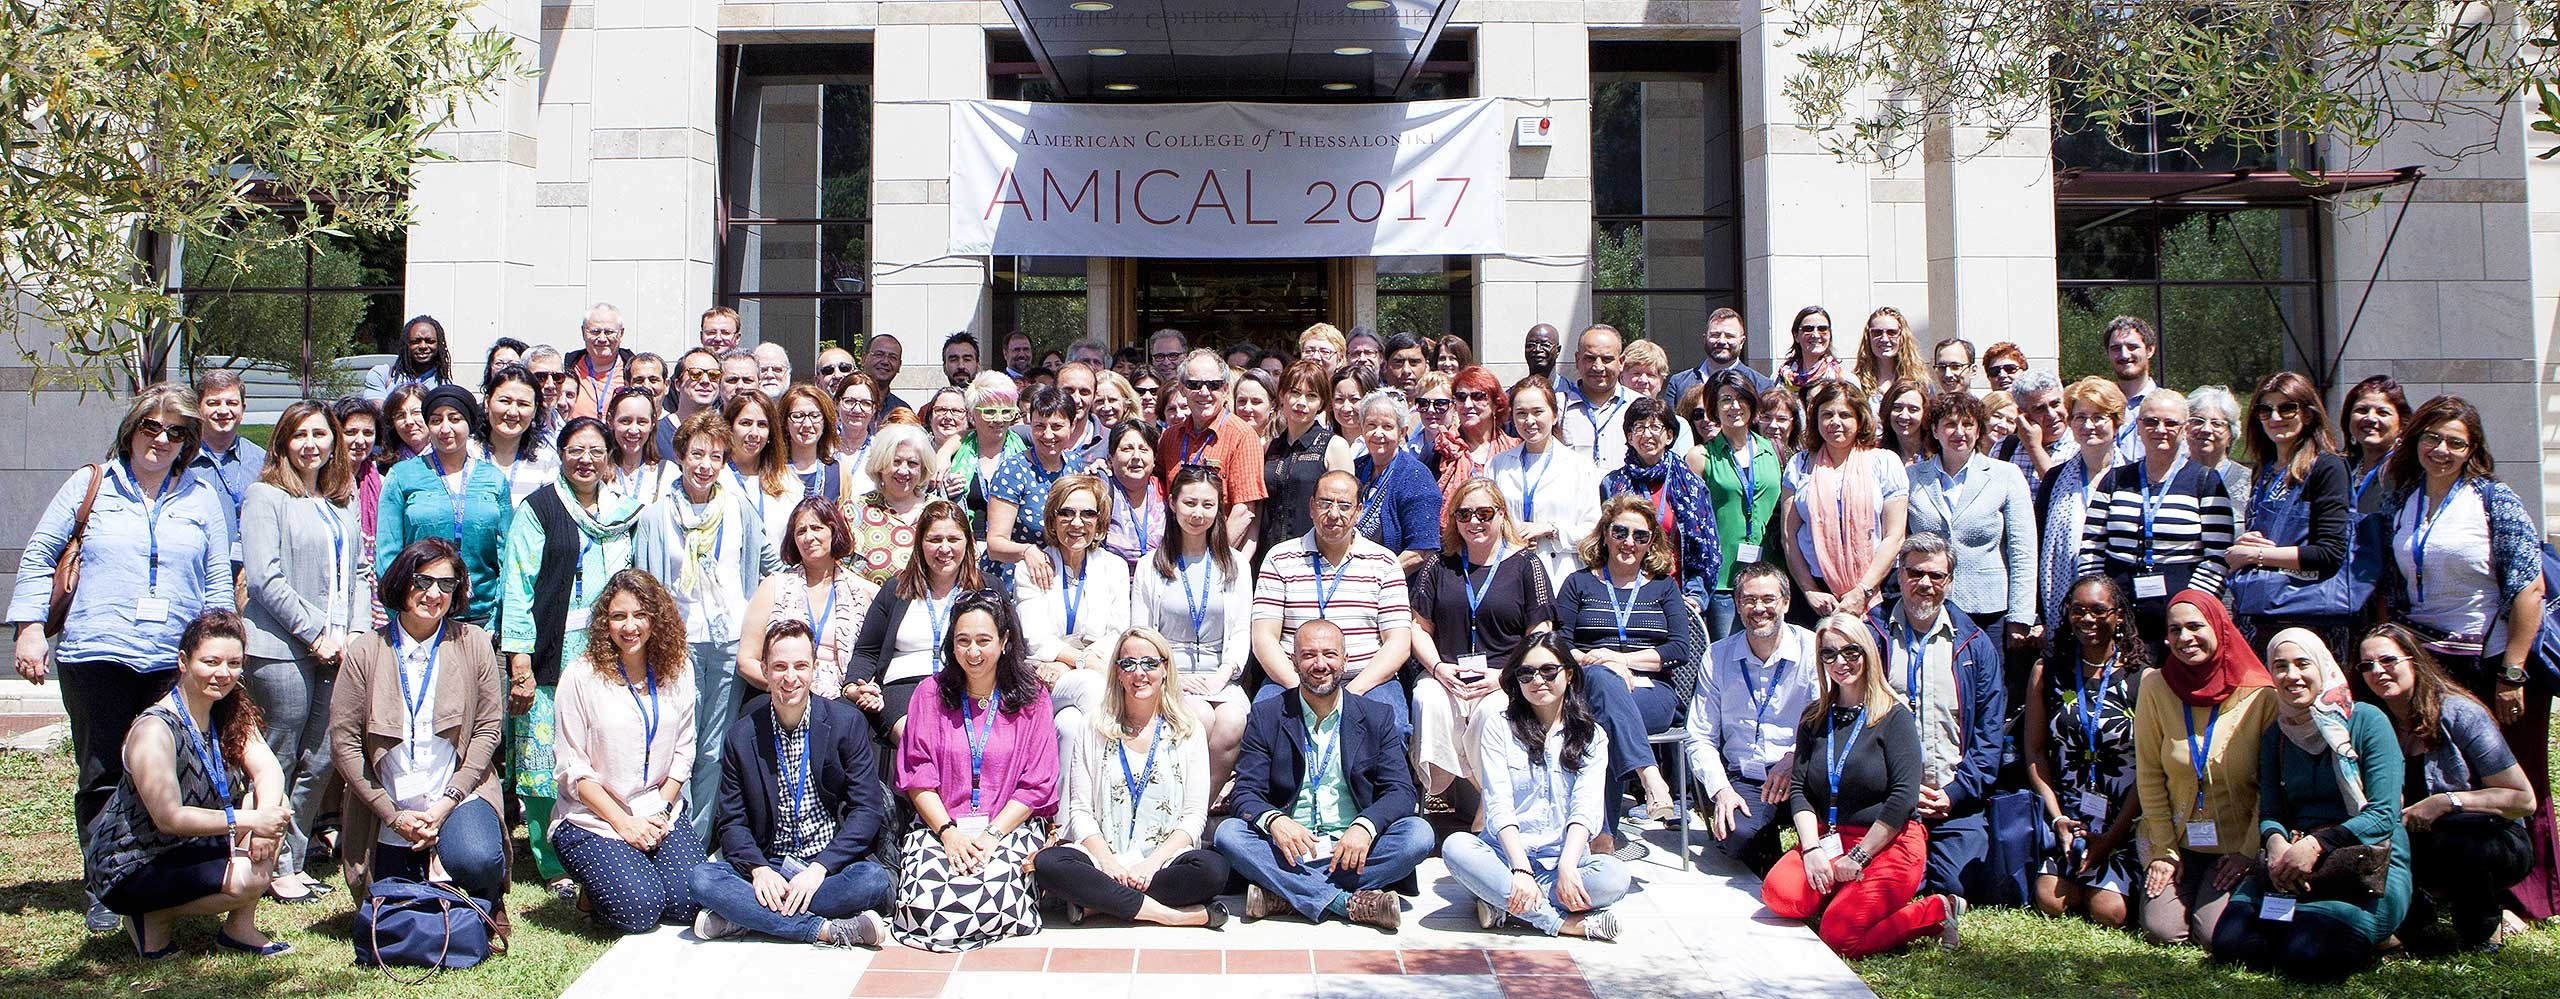 Group photo from AMICAL 2017.